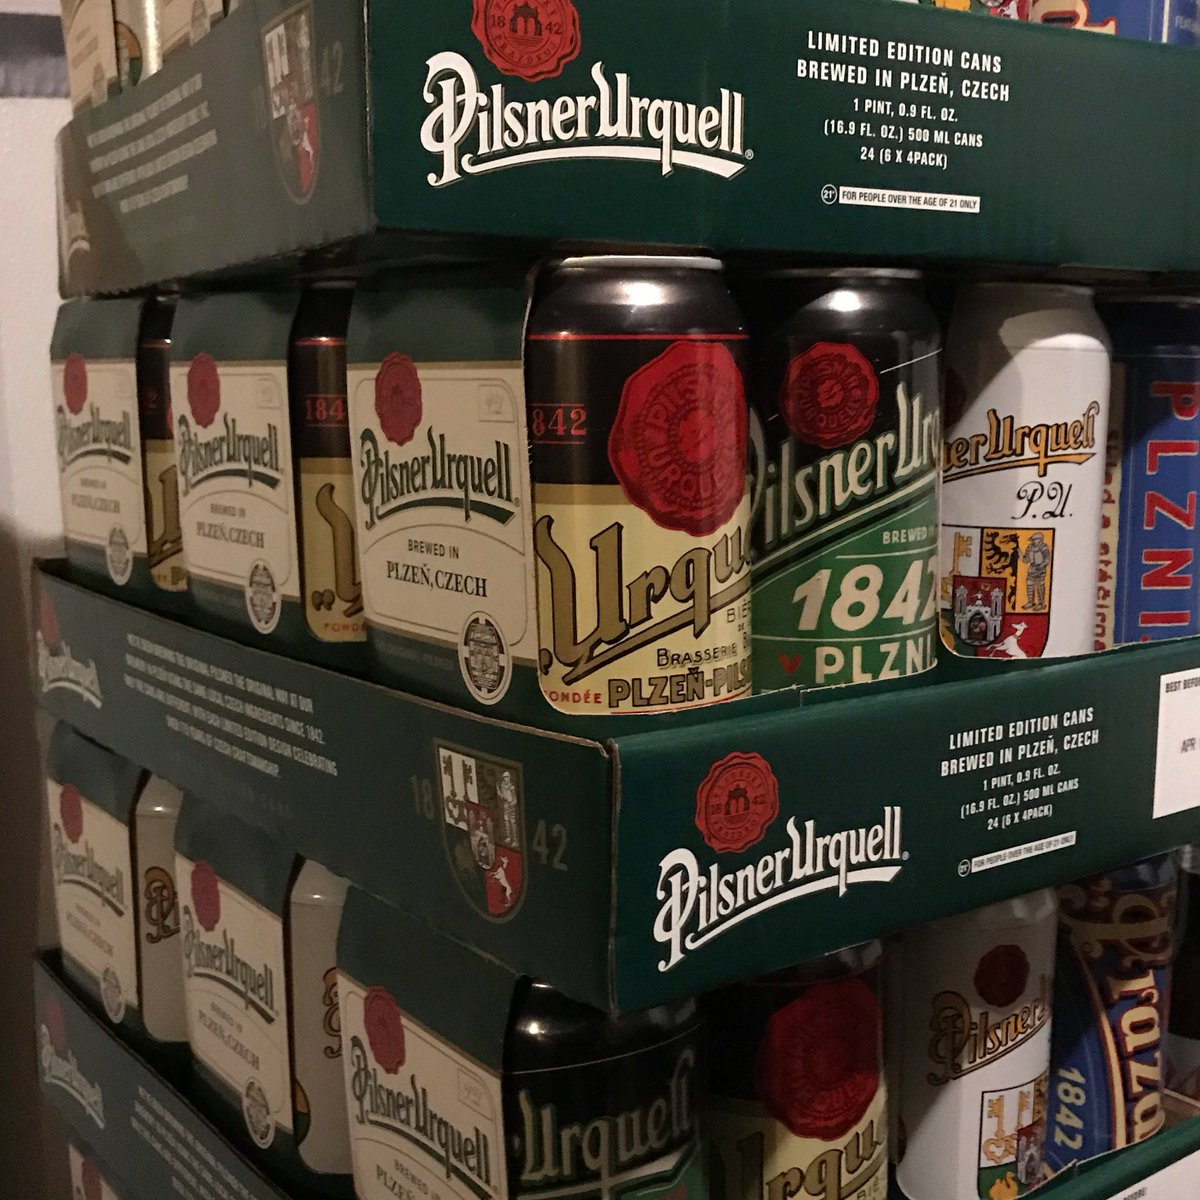 IT'S HERE!! Ever had a beer from Czech Republic? Try it at #Neirs ##FREE #pilsnerurquell #beertasting at 7pm WEDNESDAY 10/17 and #bingo at 8pm! Yes Bingo!  FREE tasting of Czech Republic's national beer #pilsnerurquell   * * * #nyc #queensny #itsinqueens #woodhavennyc #queensnyc